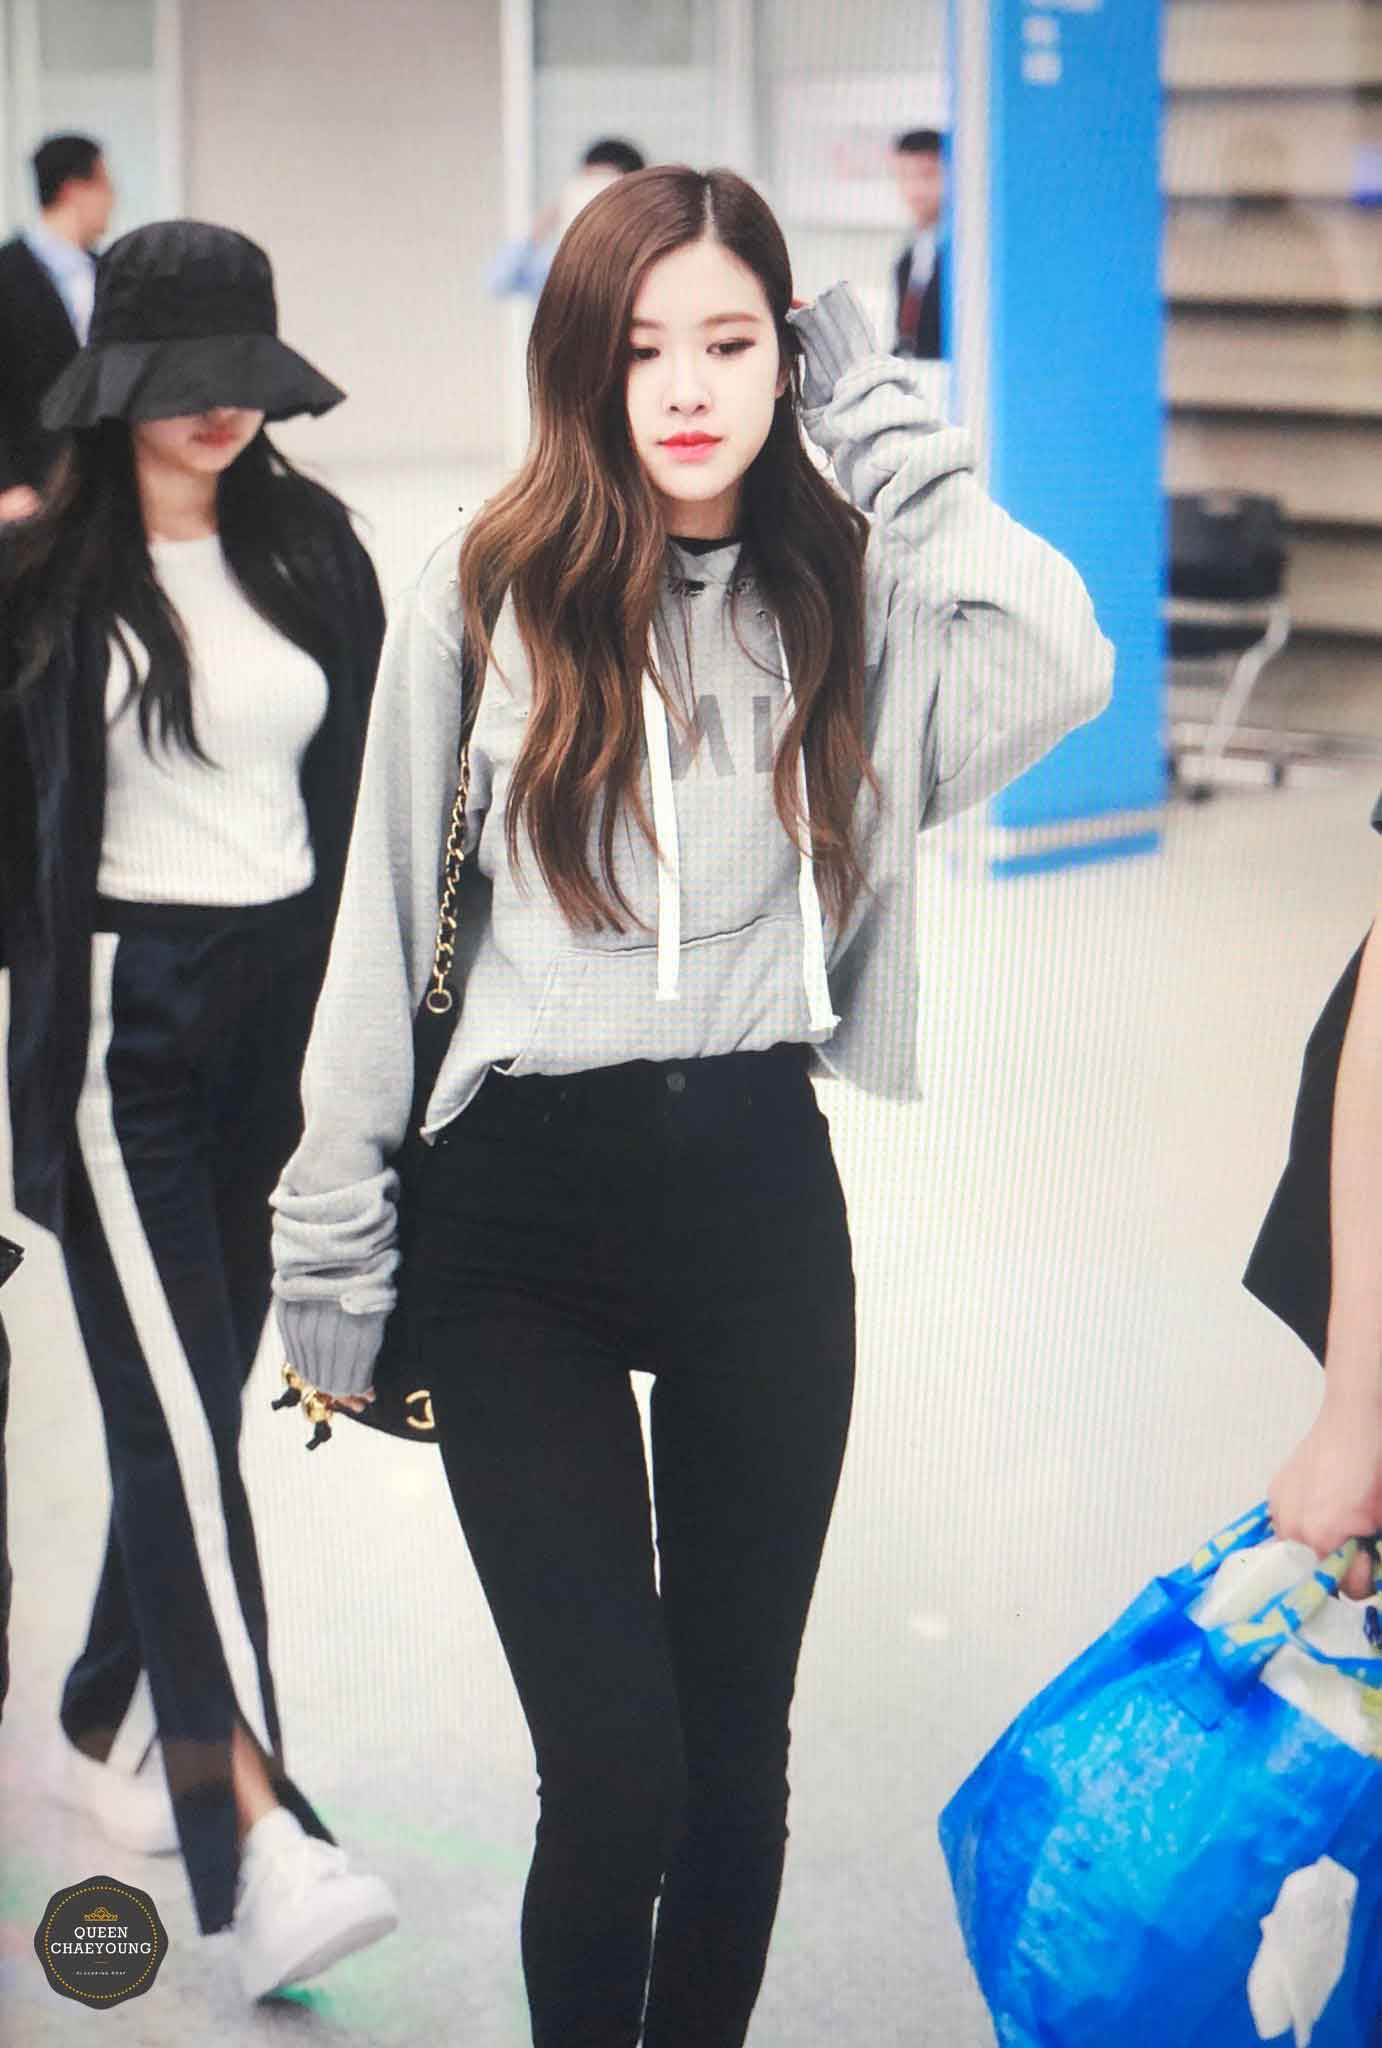 Blackpink Rose Airport Fashion Incheon 5 April 2018 From Thailand